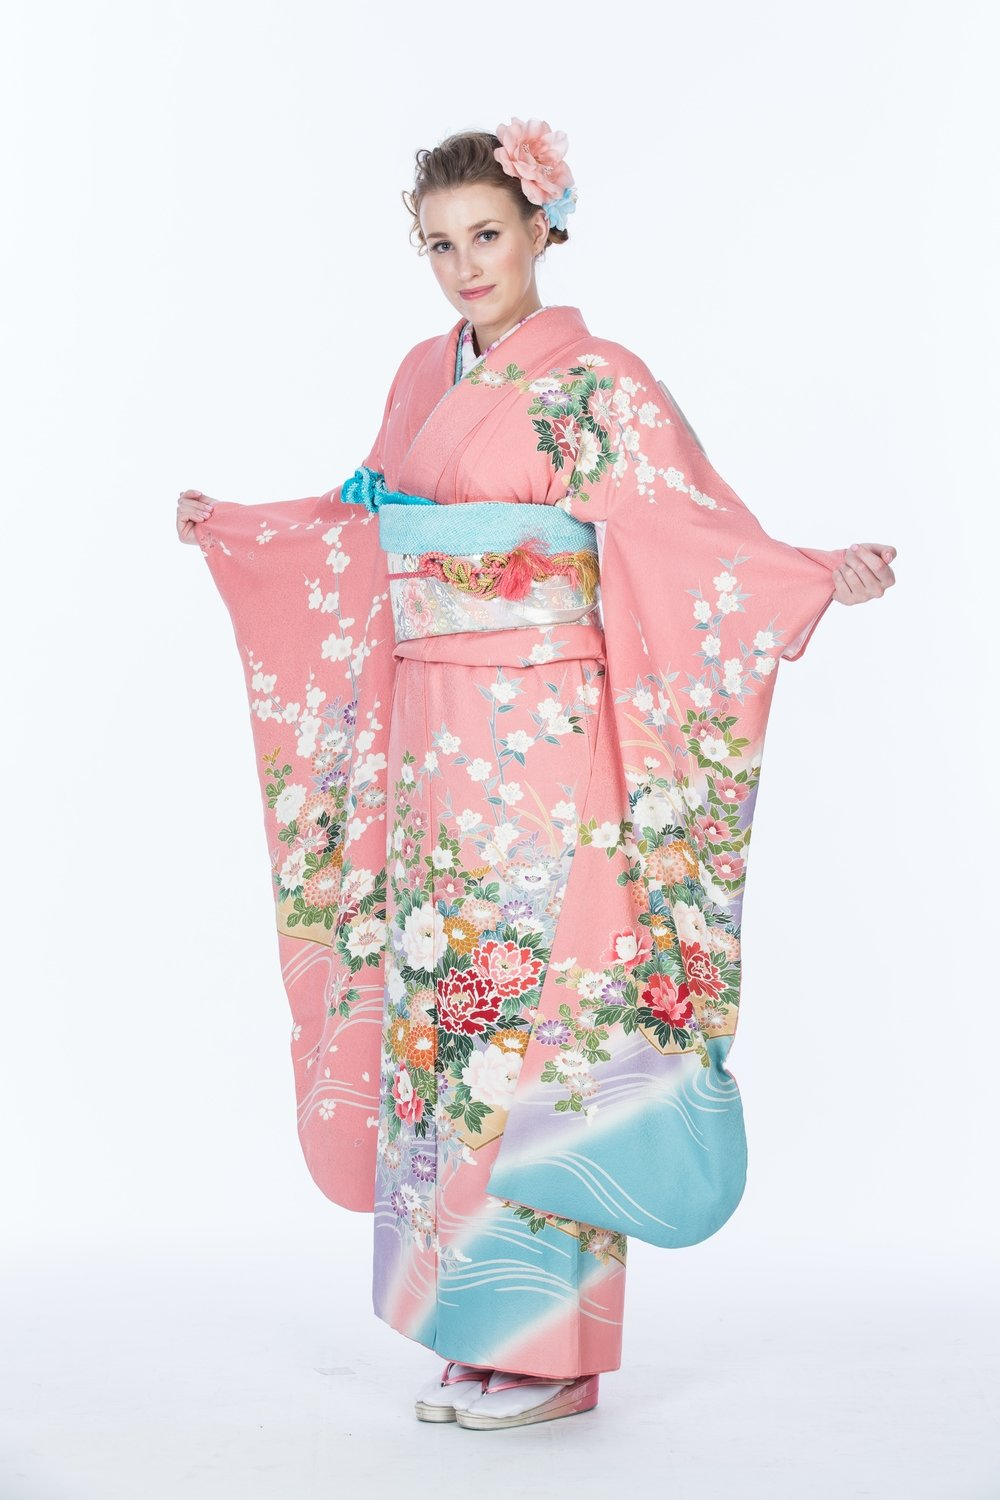 ④ Seijin Female special (All rental kimono,dressing, hair & make-up )